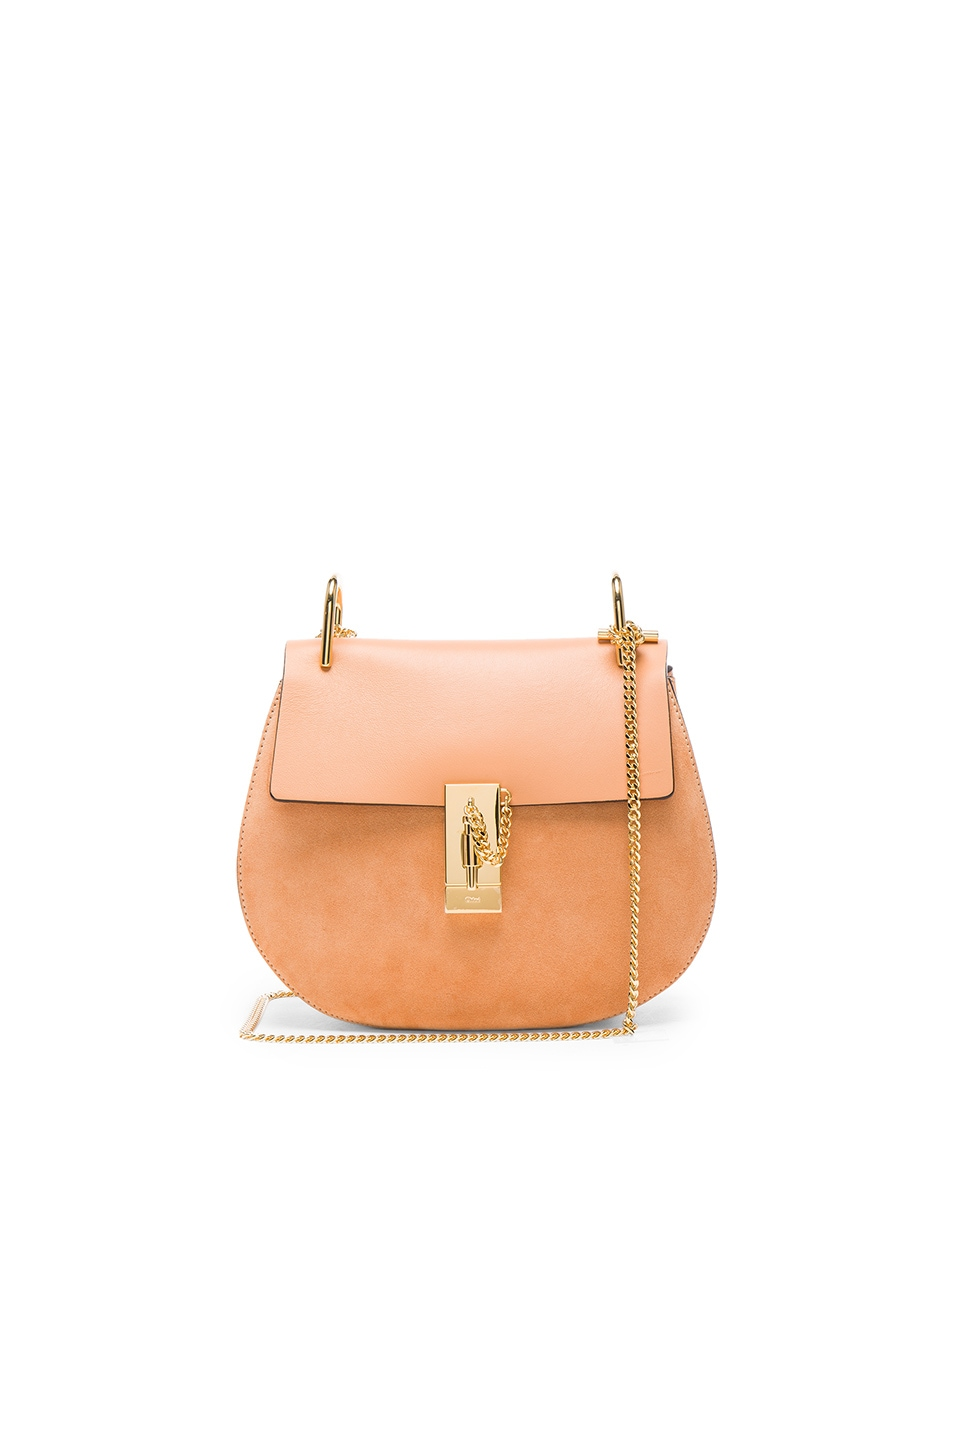 Image 1 of Chloe Small Suede & Calfskin Drew Shoulder Bag in Blushy Pink